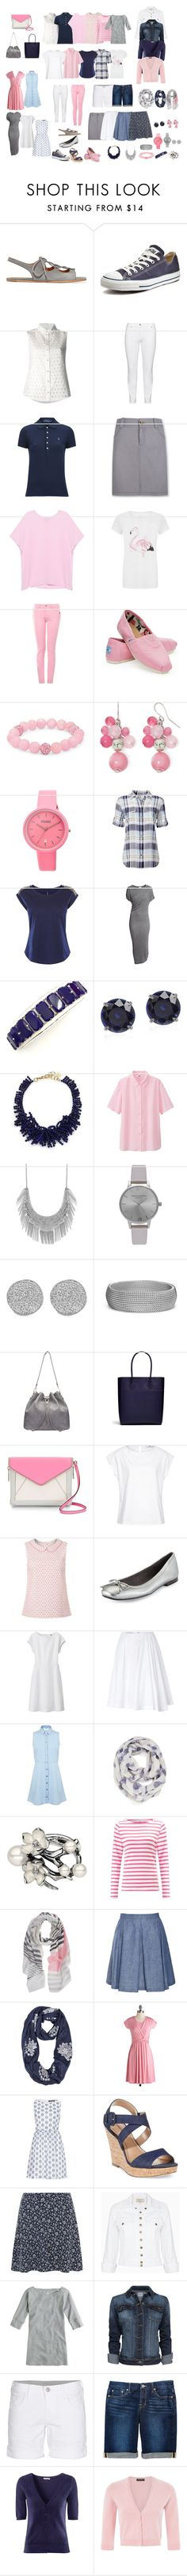 """""""Warm Weather Casual Capsule Wardrobe in White, Pink. Grey and Blue"""" by tracy-gowen ❤ liked on Polyvore featuring Chloé, Converse, O'2nd, Steilmann, Polo Ralph Lauren, Aventura, Pinko, Love Moschino, TOMS and Palm Beach Jewelry"""